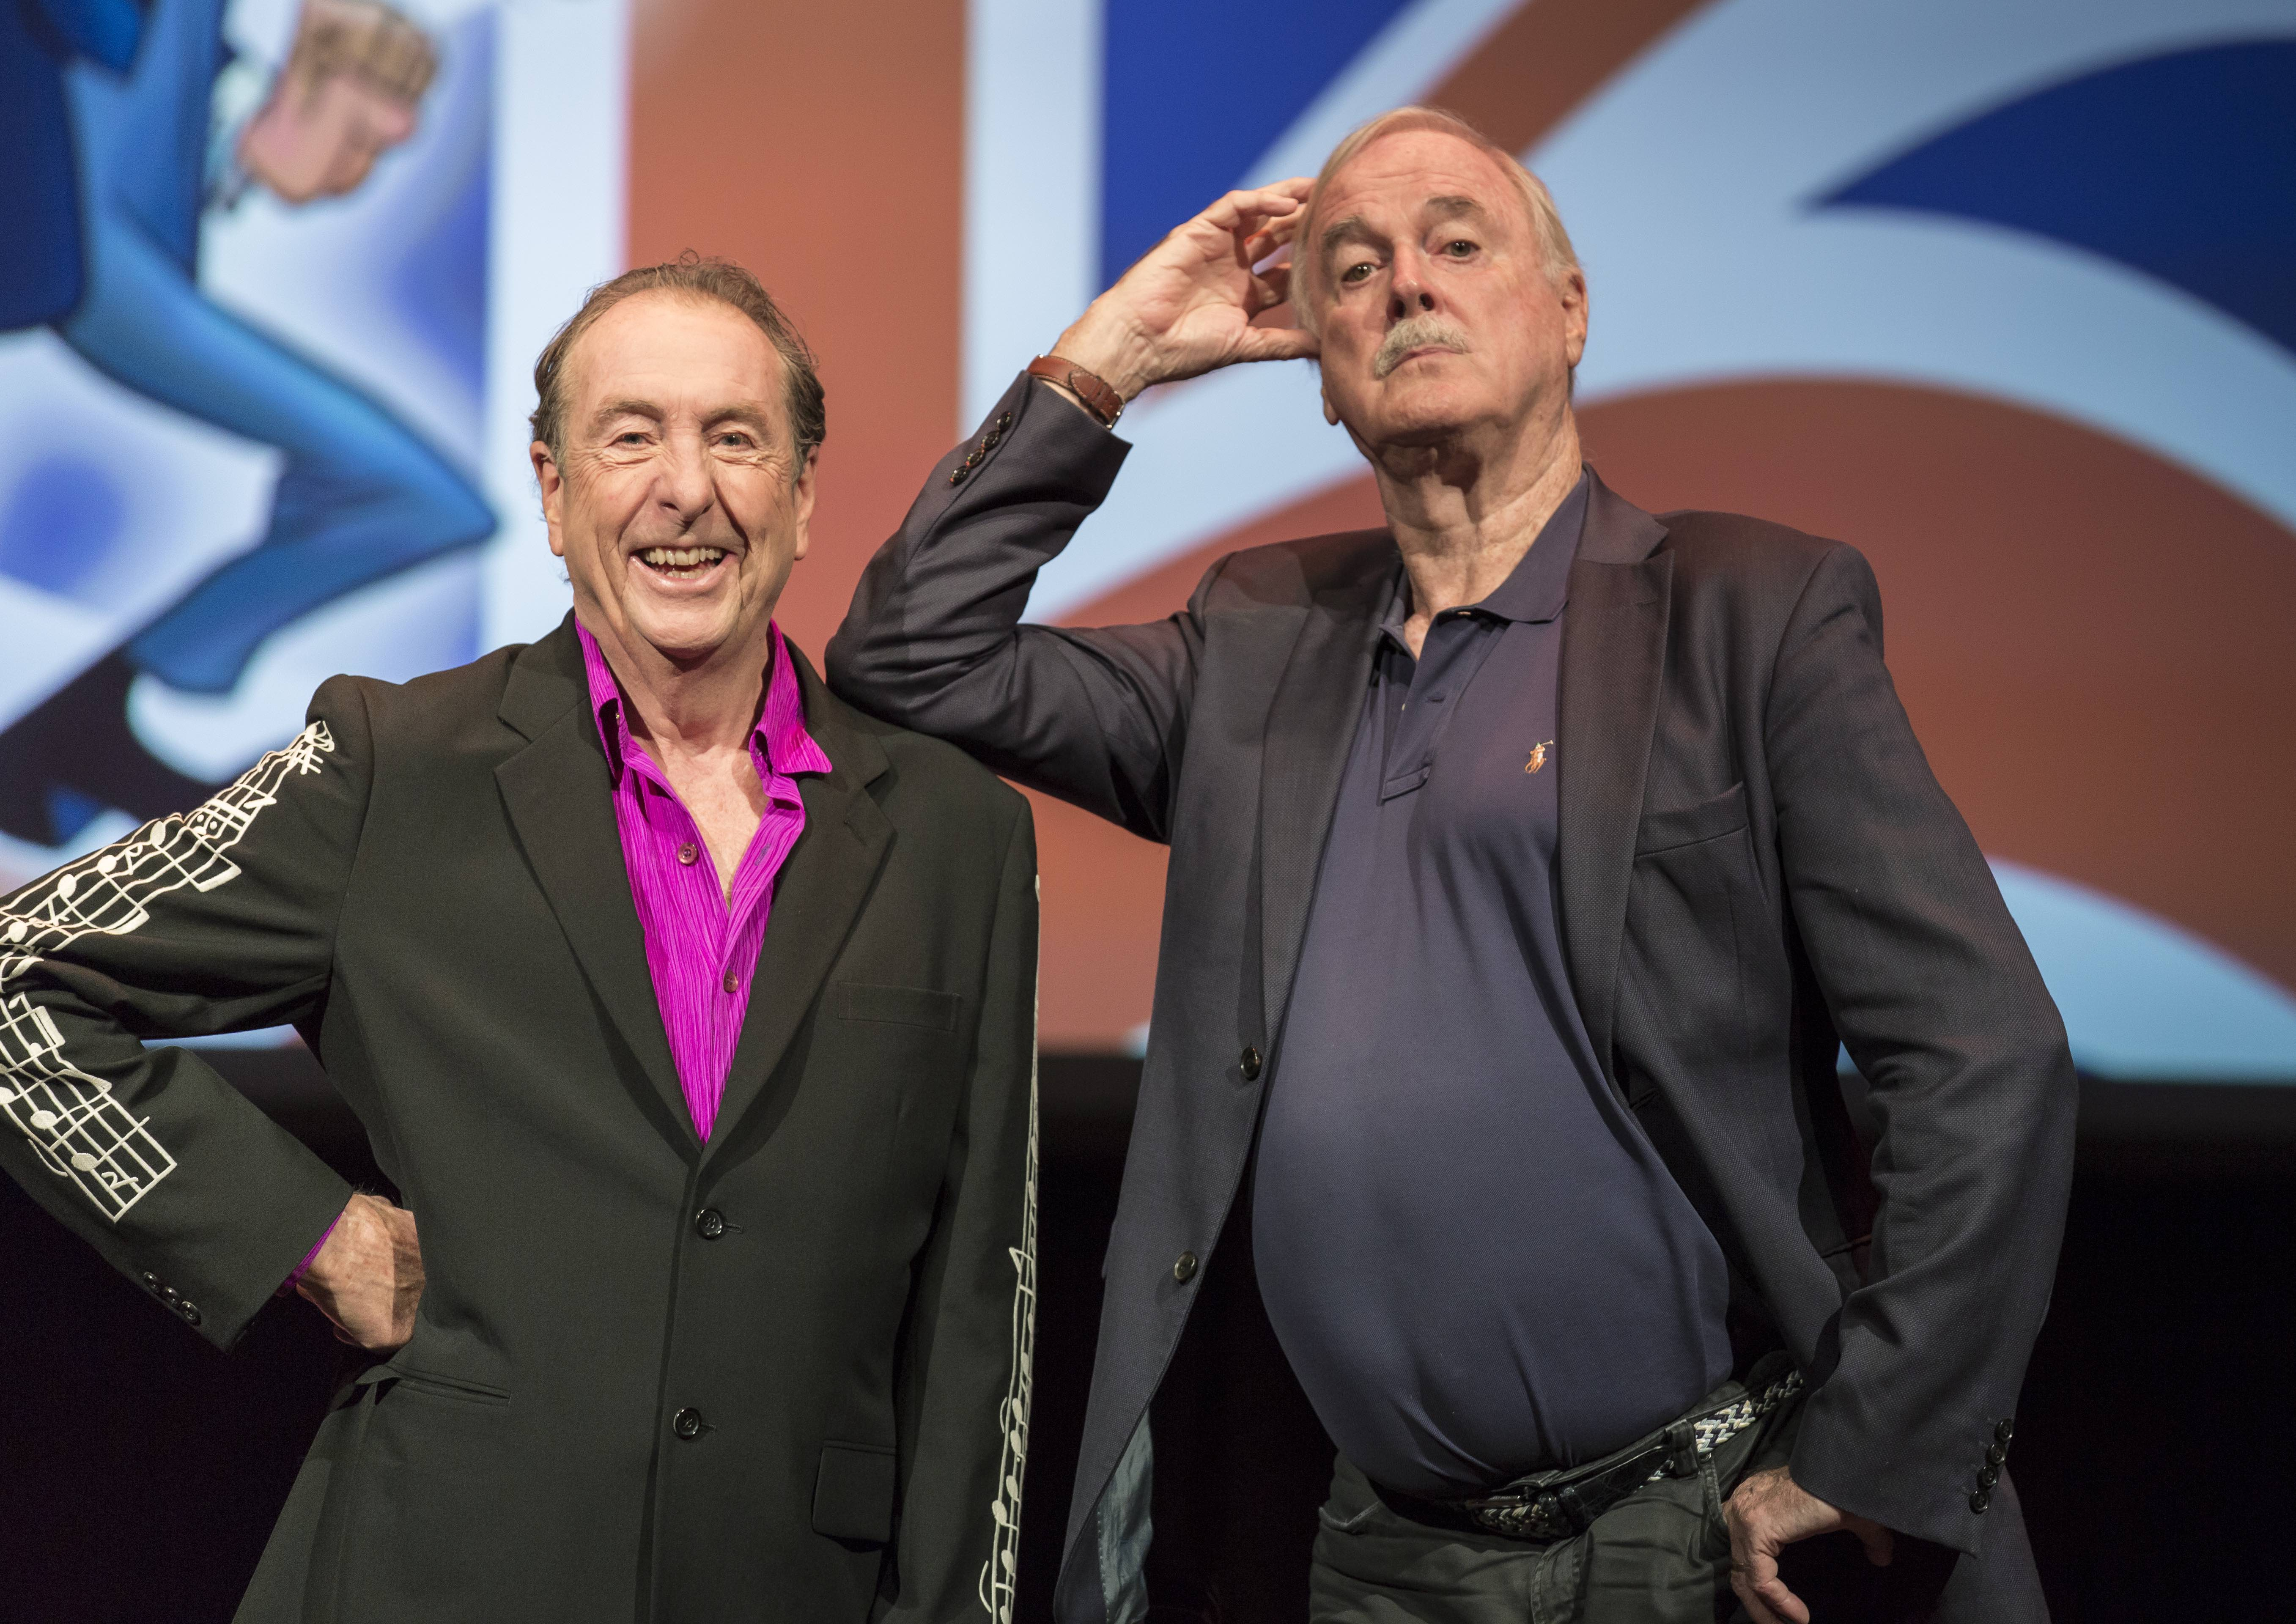 Cleese_Idle_Pre_Show-348 copy.jpg